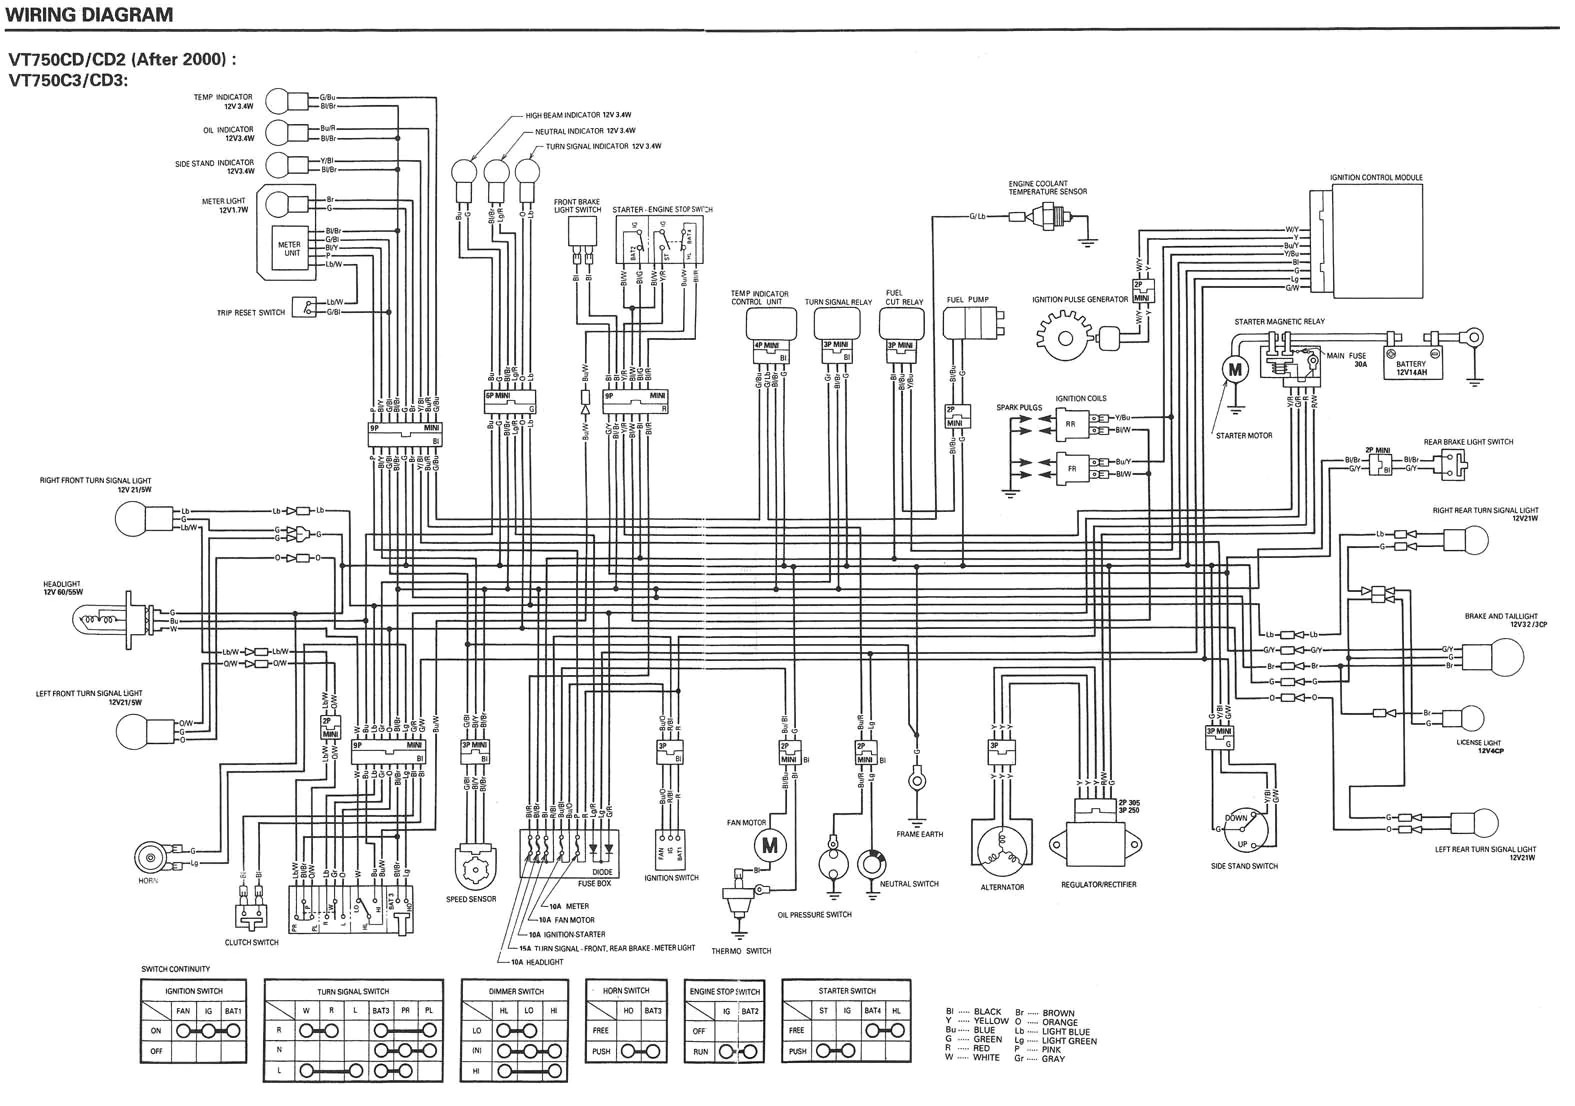 vt wiring diagram white rodgers relay harness for 1100 honda shadow 1988 2006